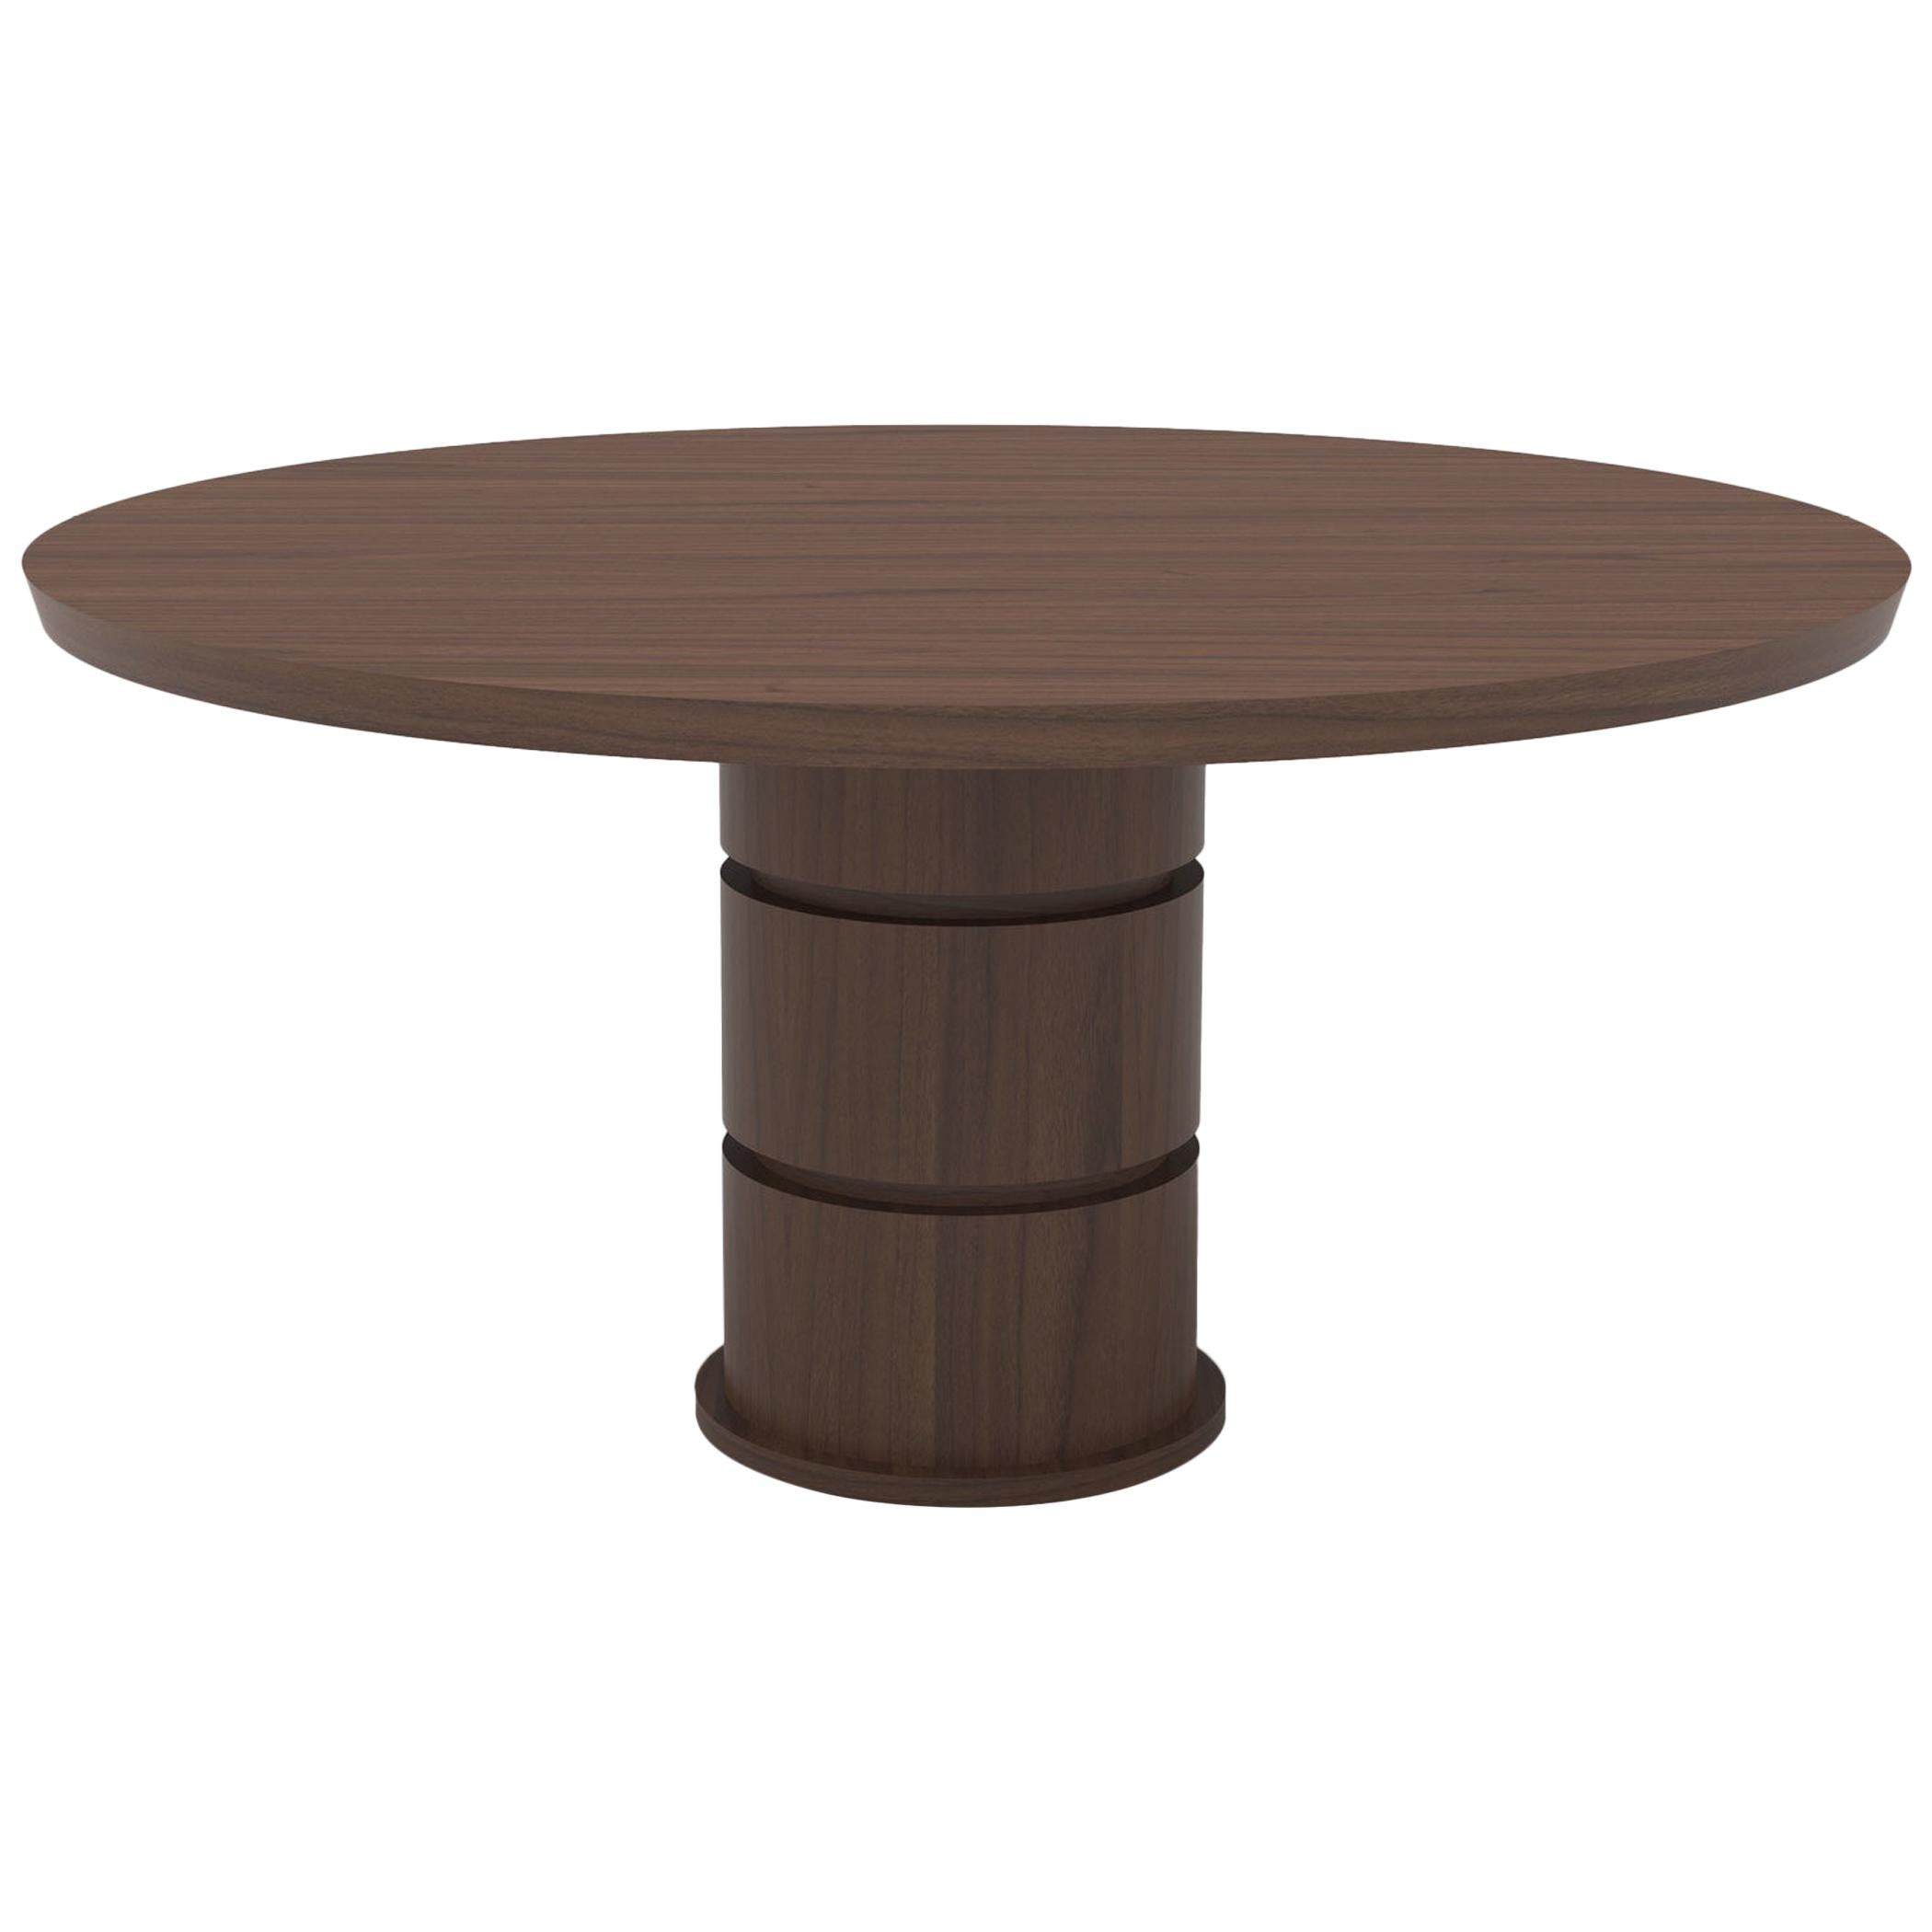 Wood dining table with solid top and cylindrical base with special cut details